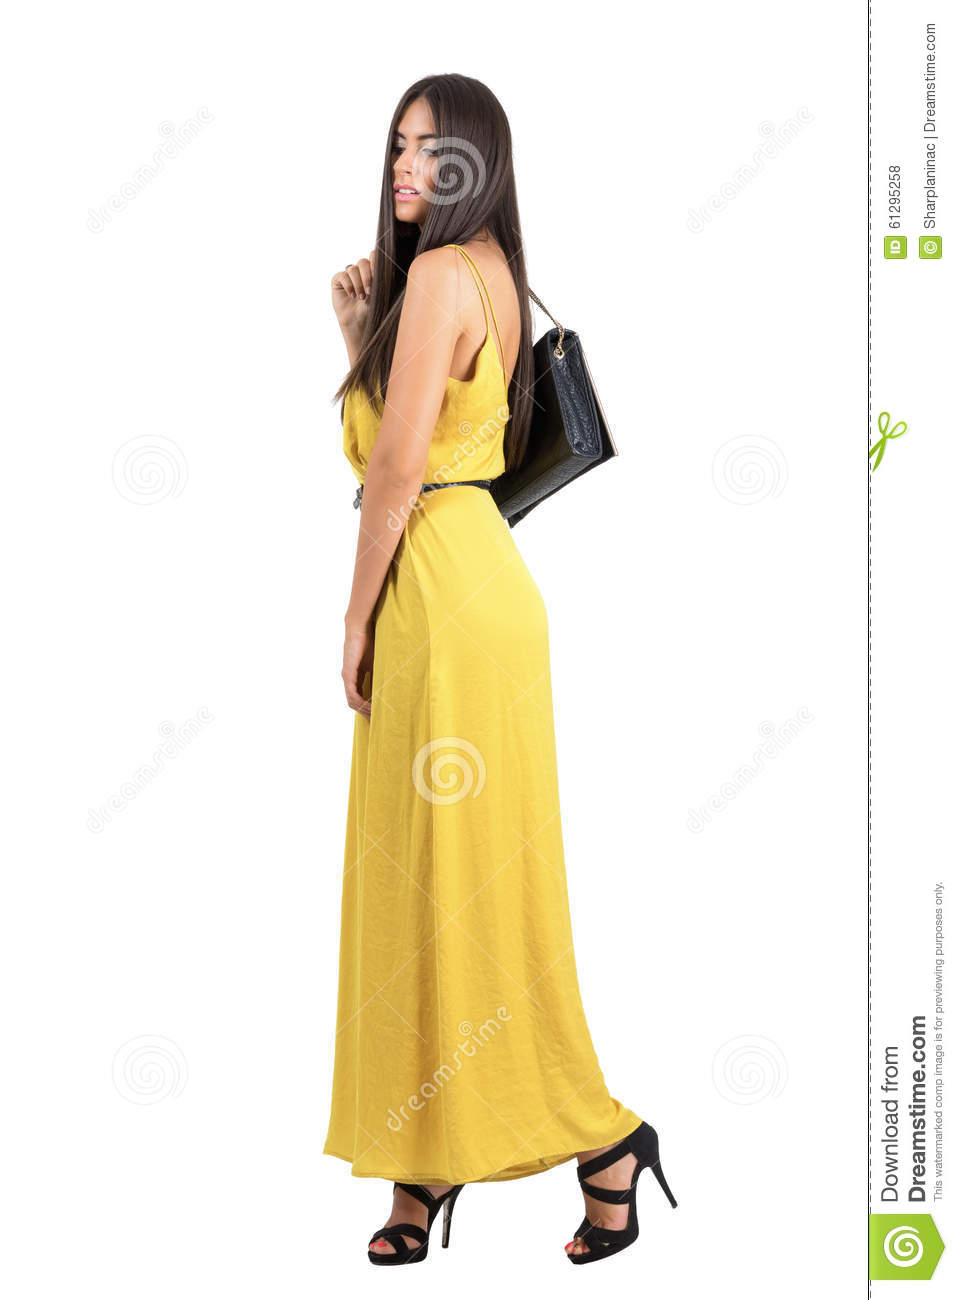 e7d224816a5a Beautiful fashion model in yellow jumpsuit walking with bag over the  shoulder. Full body length portrait isolated over white studio background.